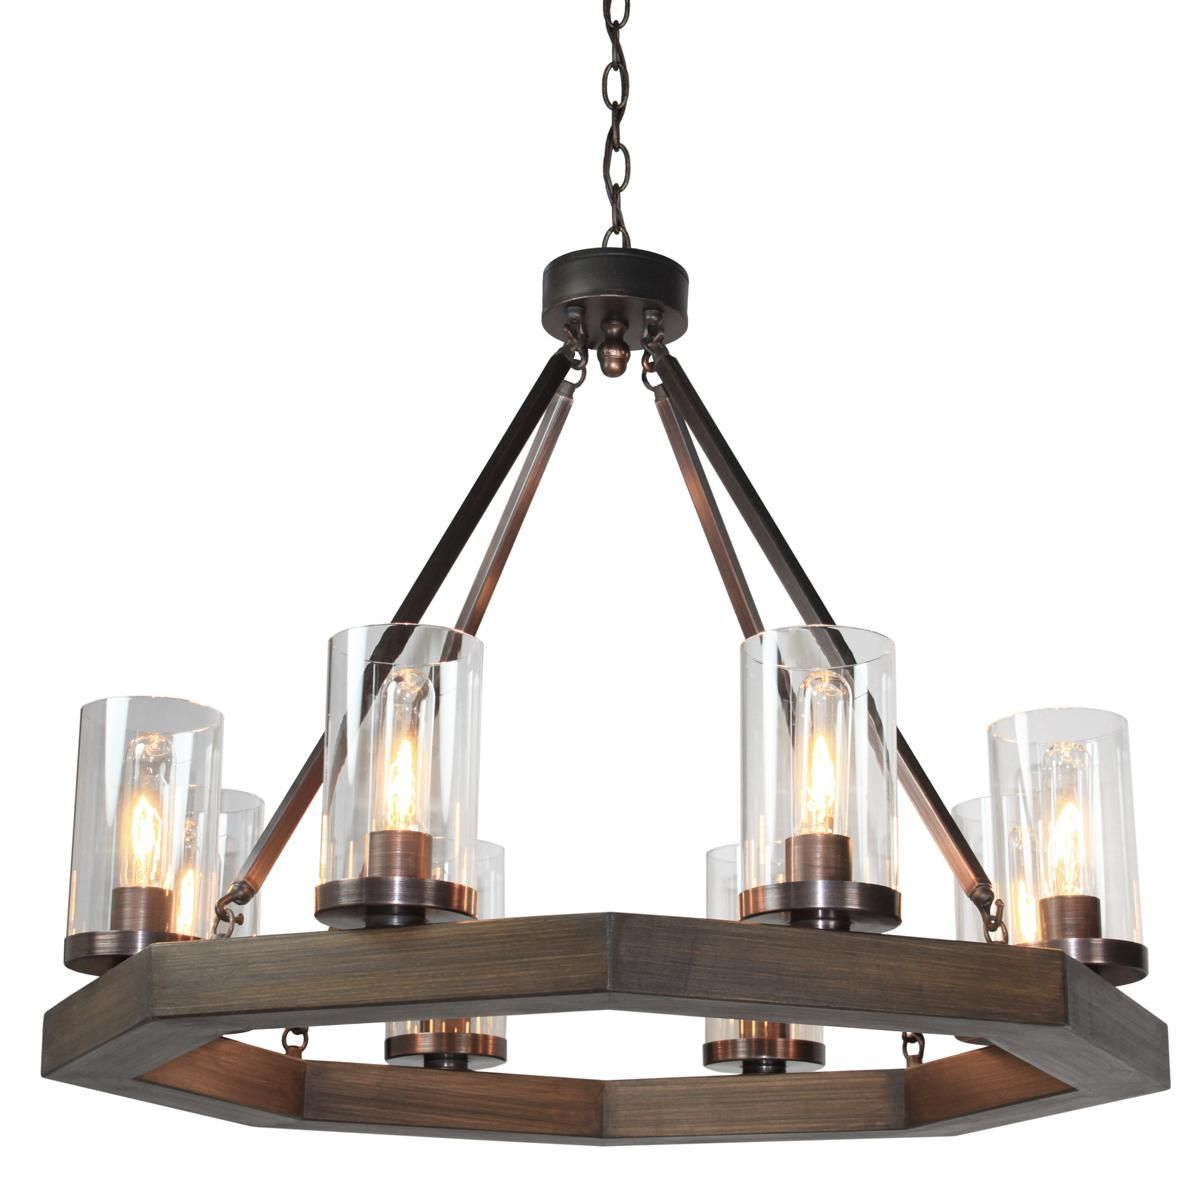 Medieval modern 8 light octagon chandelier medieval chandeliers medieval modern 8 light octagon chandelier arubaitofo Choice Image